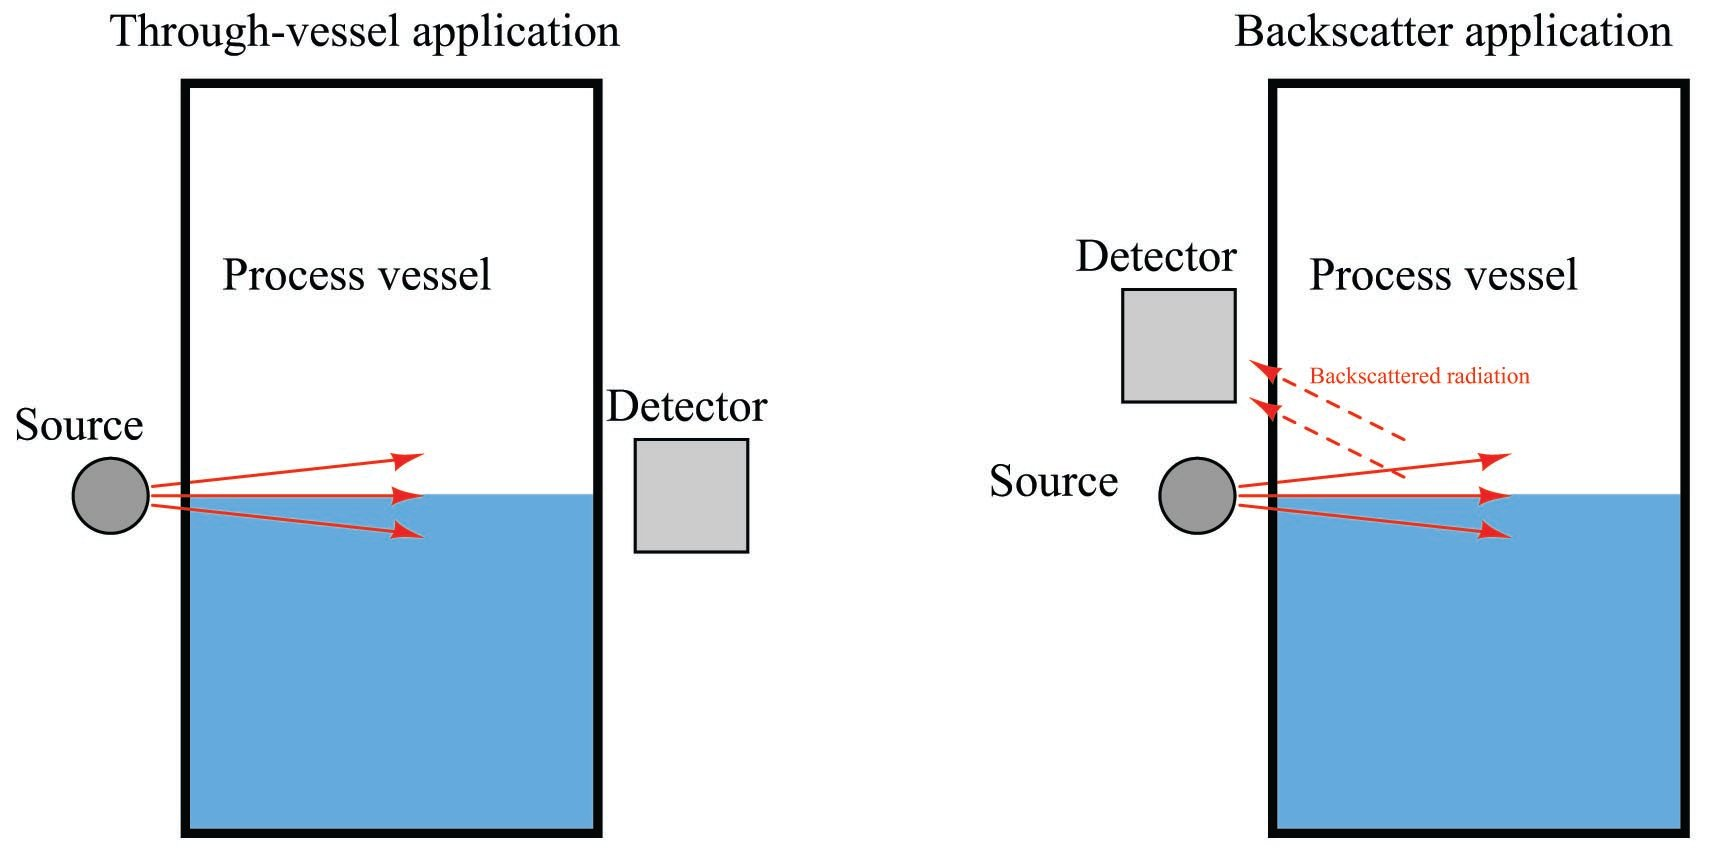 Radiation Level Measurement | Introduction to Continuous Level Measurement | Automation Textbook